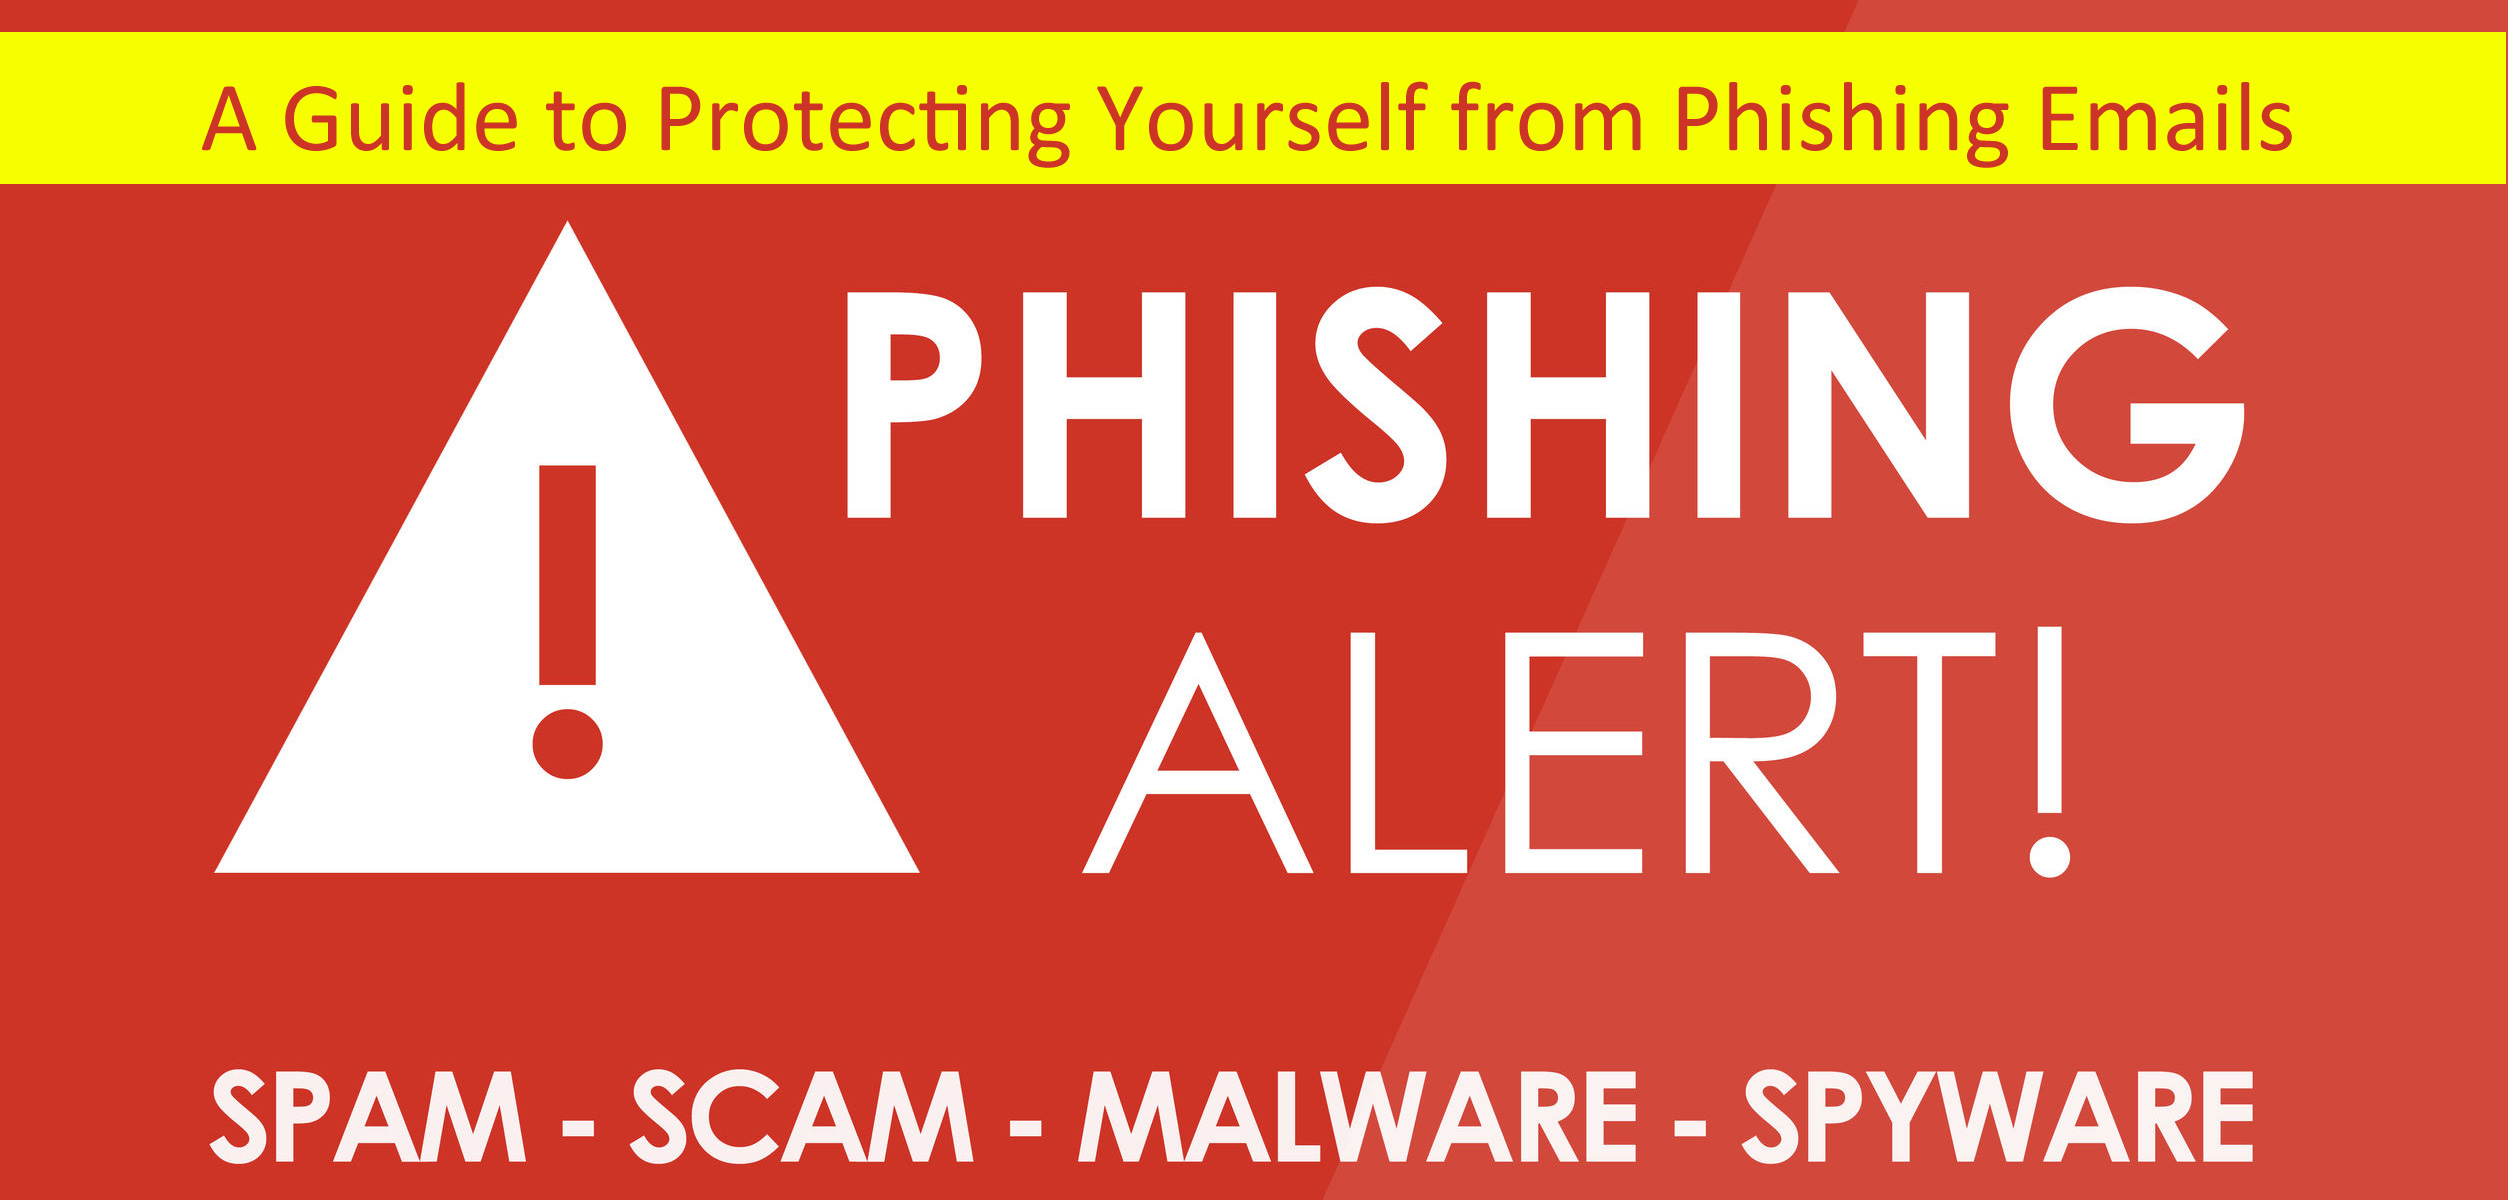 A Guide to Protecting Yourself from Phishing Emails